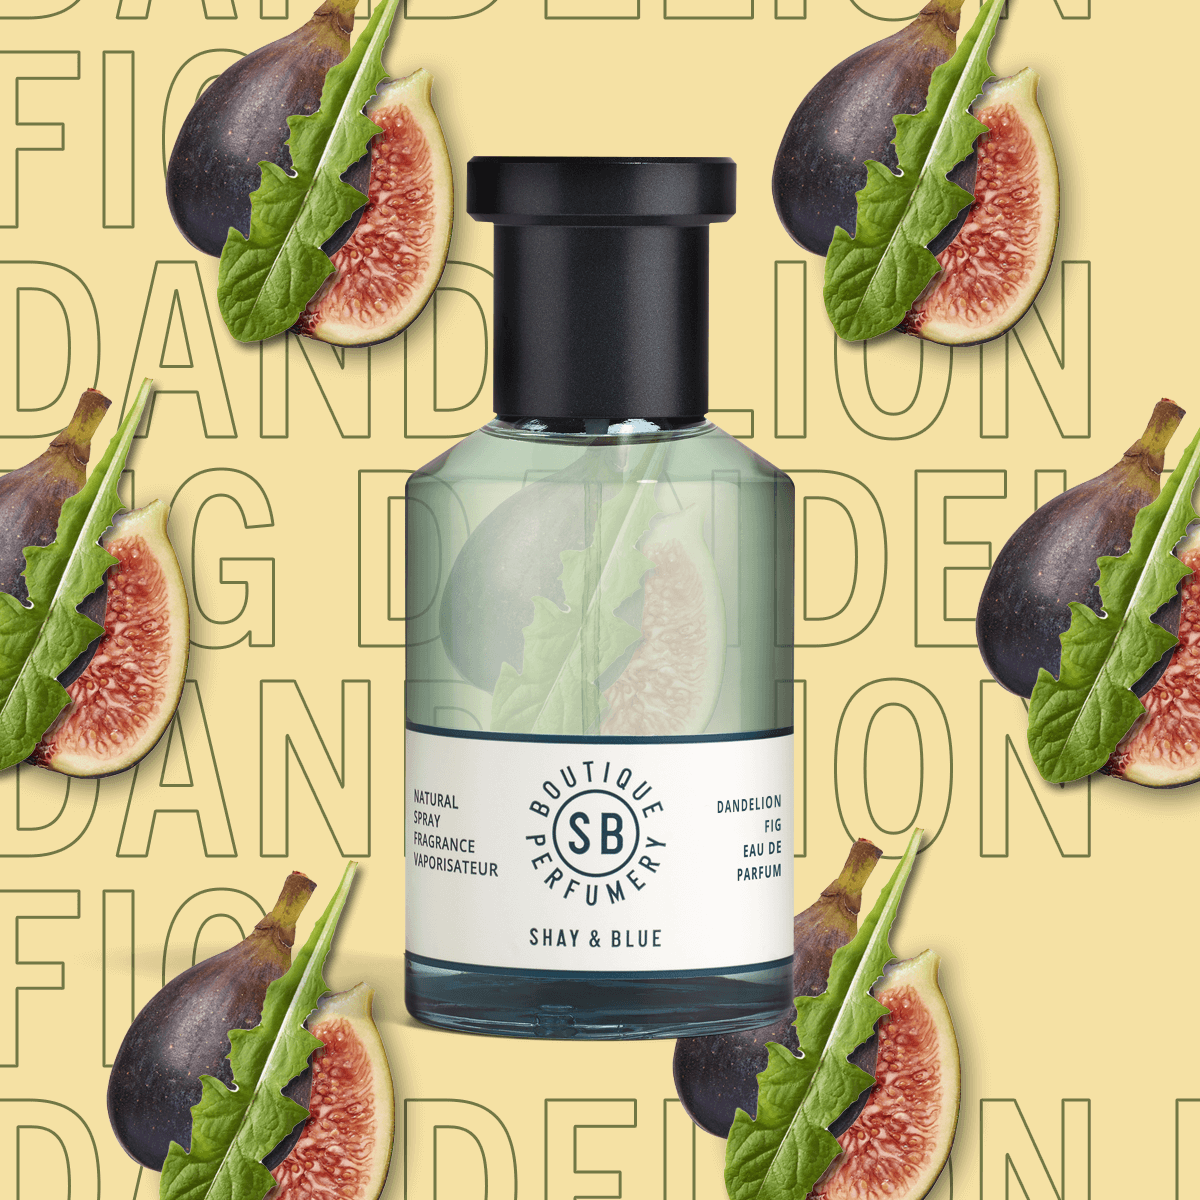 Dandelion Fig Fragrance 100ml | Fig and dandelion leaf blended with lemongrass, tomato vine and juniper | Clean All Gender Fragrance | Shay & Blue